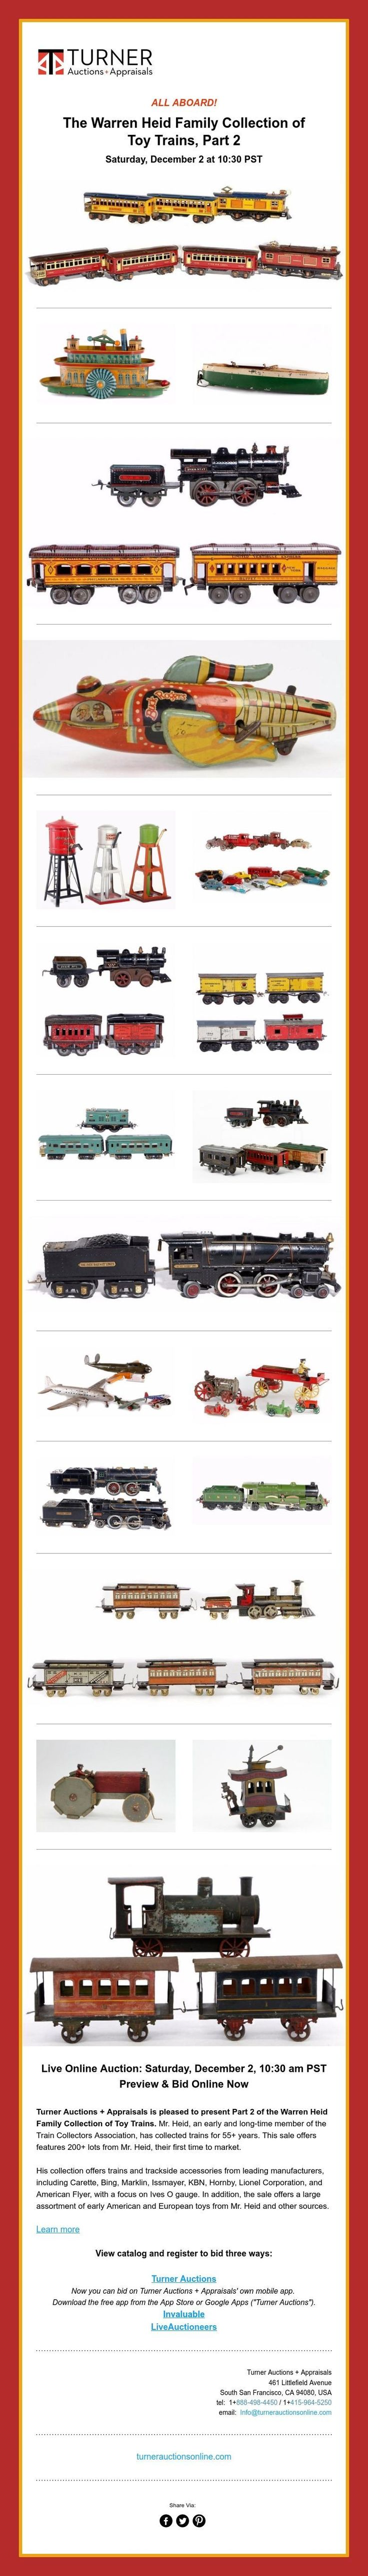 ALL ABOARD!  The Warren Heid Family Collection of Toy Trains, Part 2Saturday, December 2 at 10:30 PST